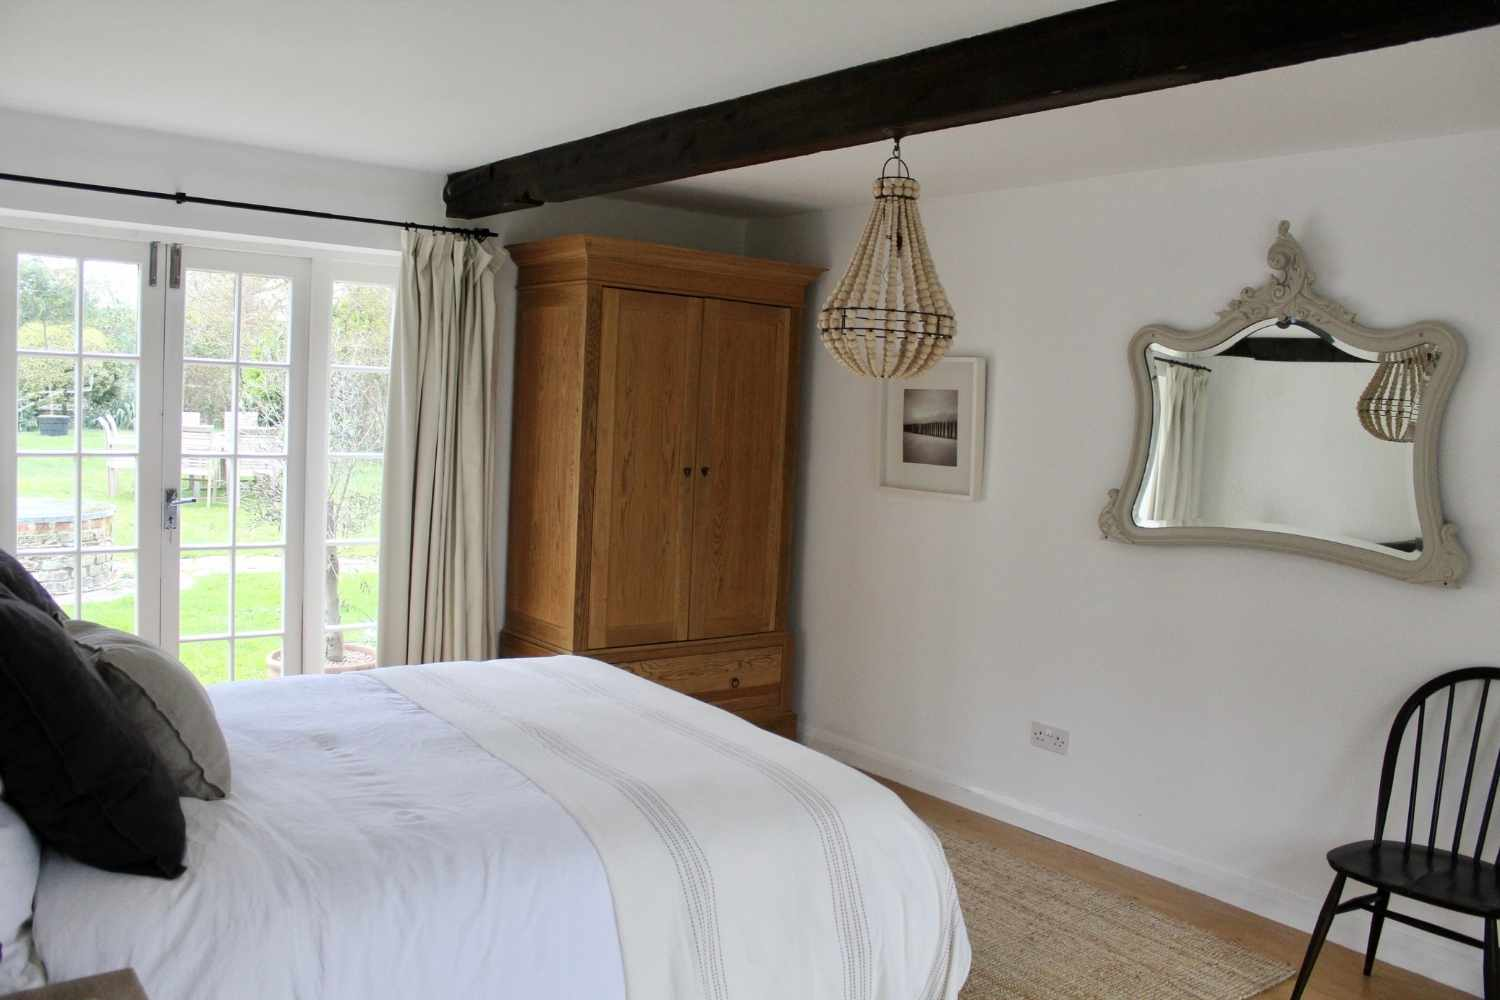 Bedroom One - with view of the garden